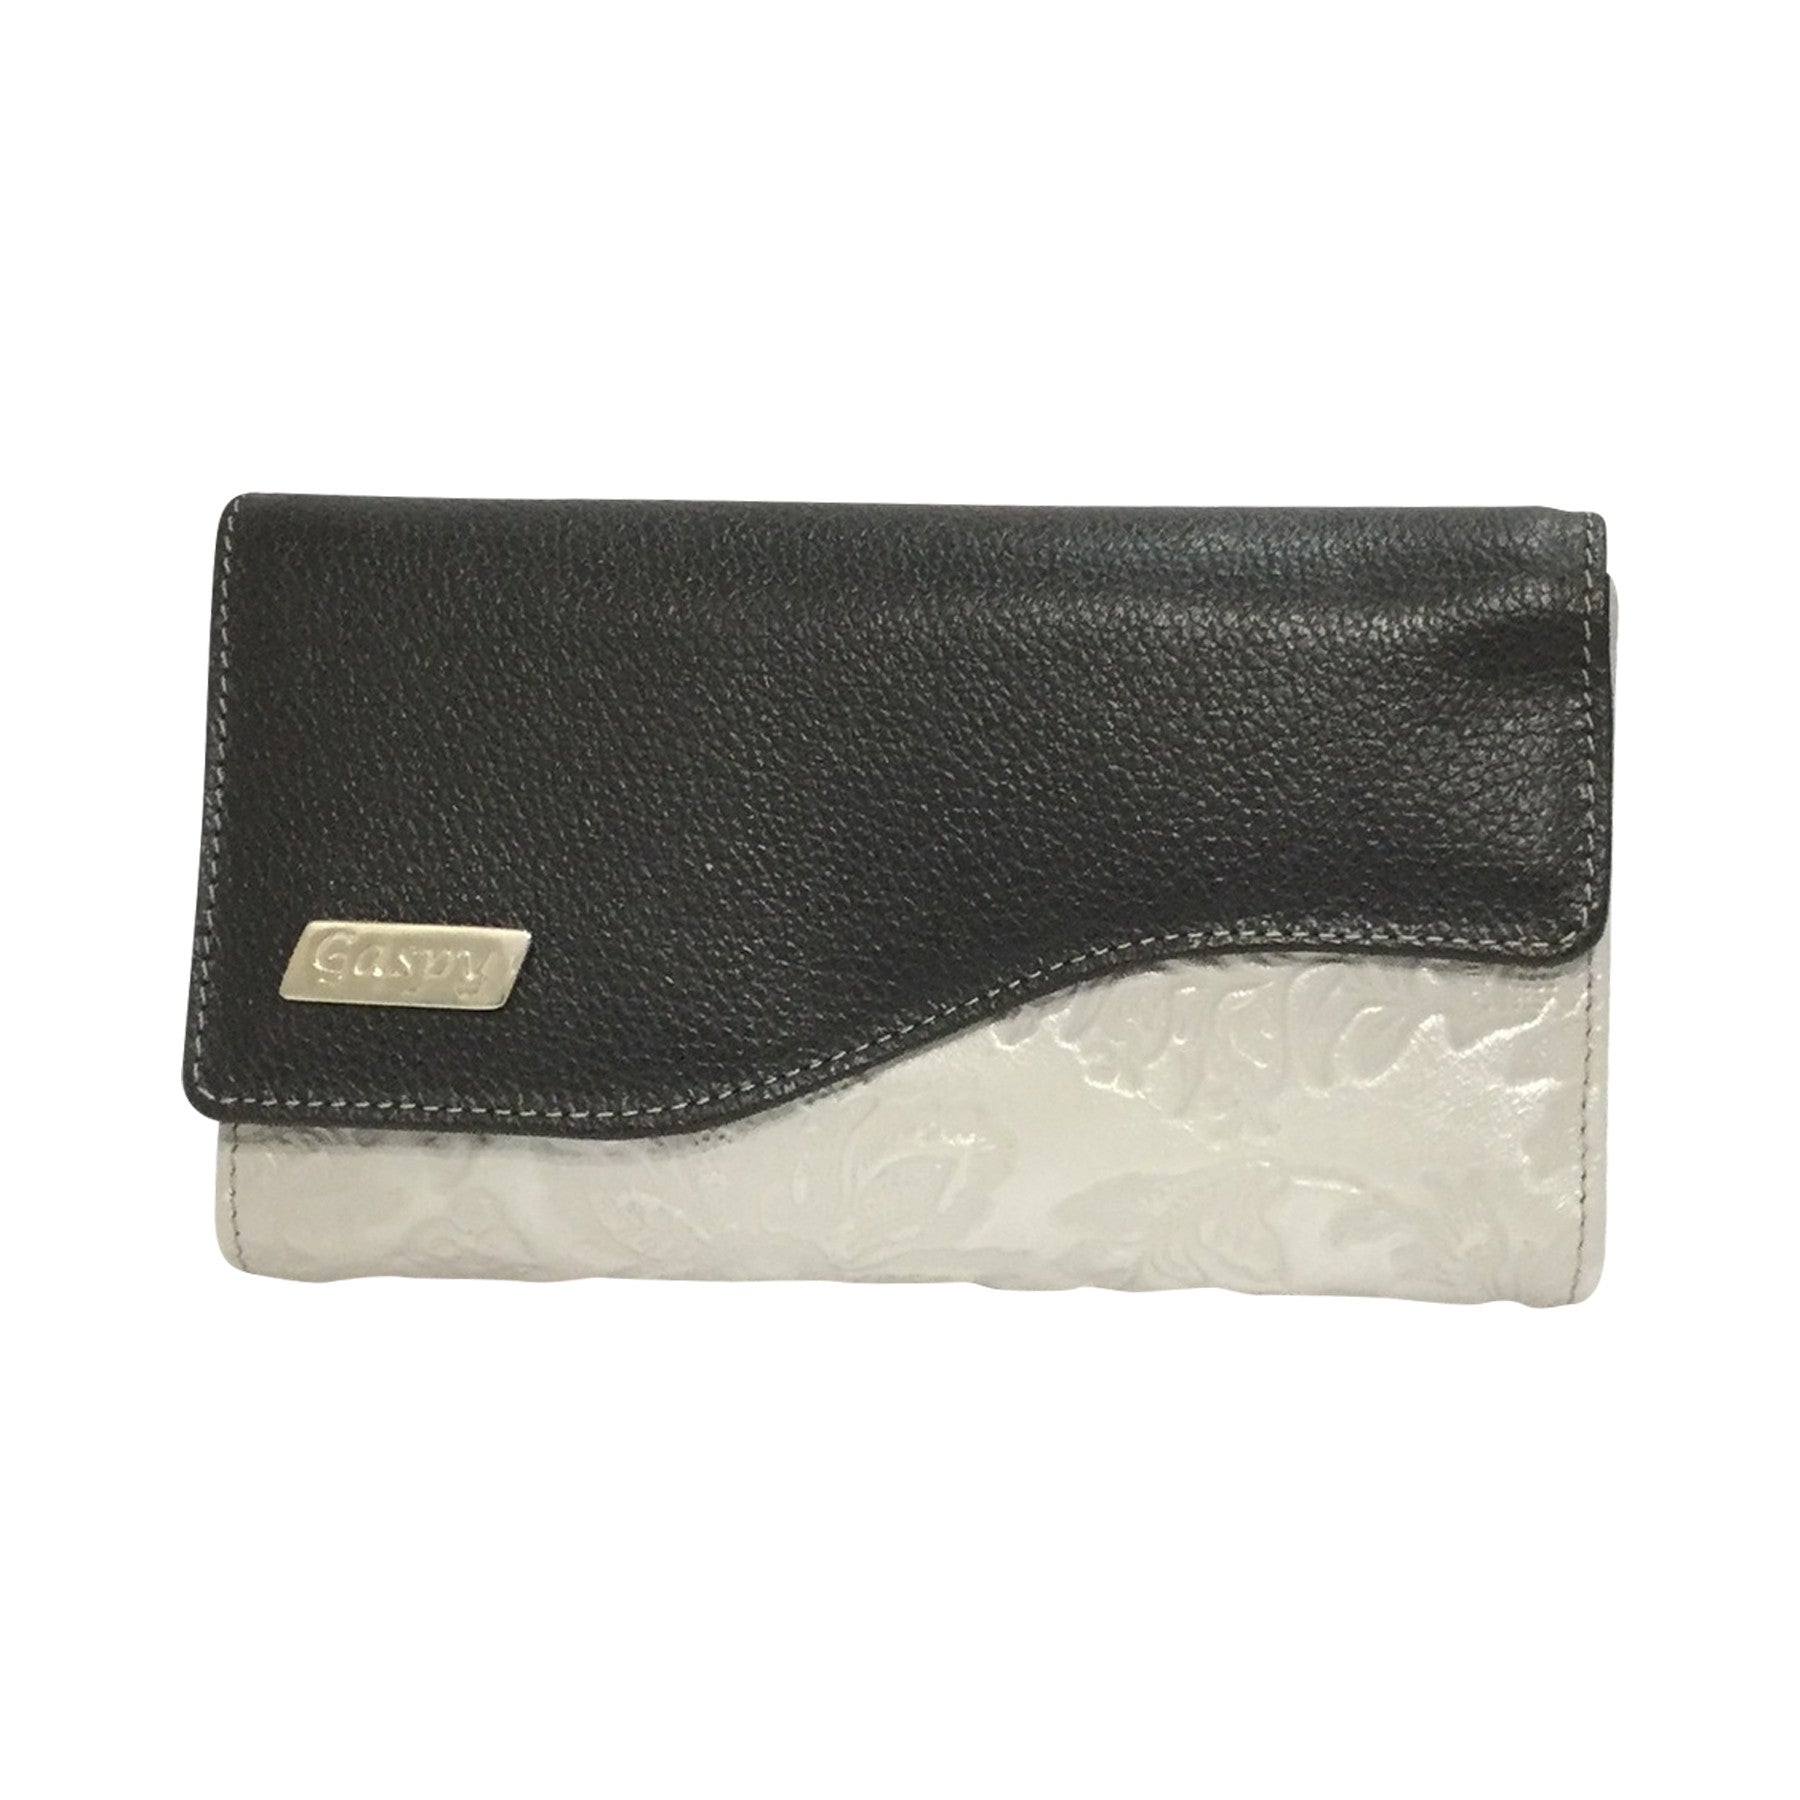 Danna Wallet - The Gaspy Collection